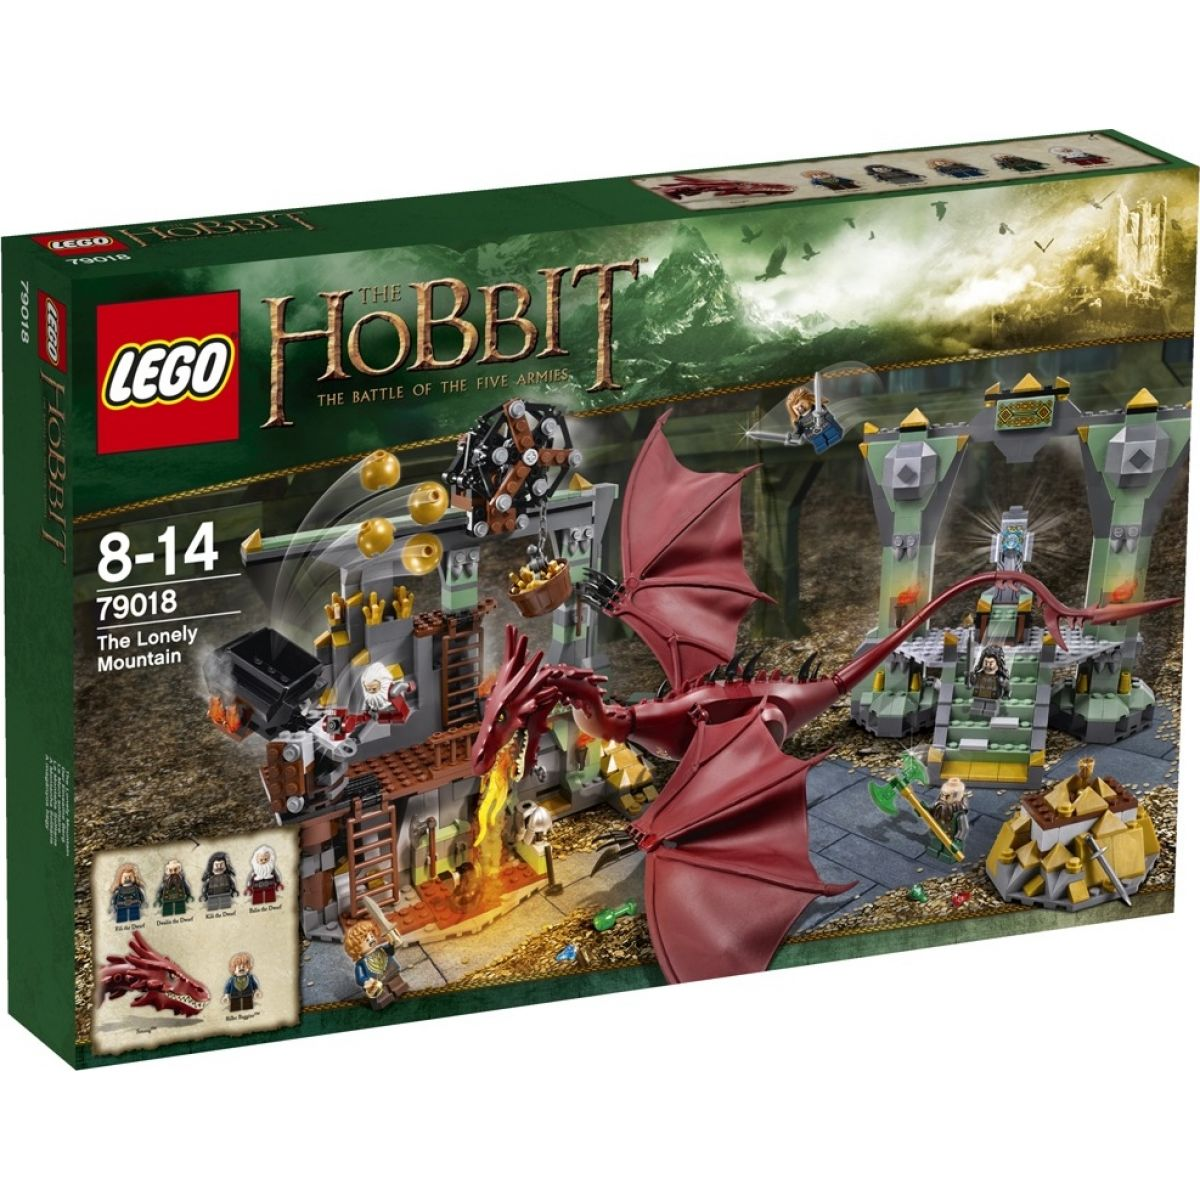 LEGO Hobbit 79018 - The Lonely Mountain